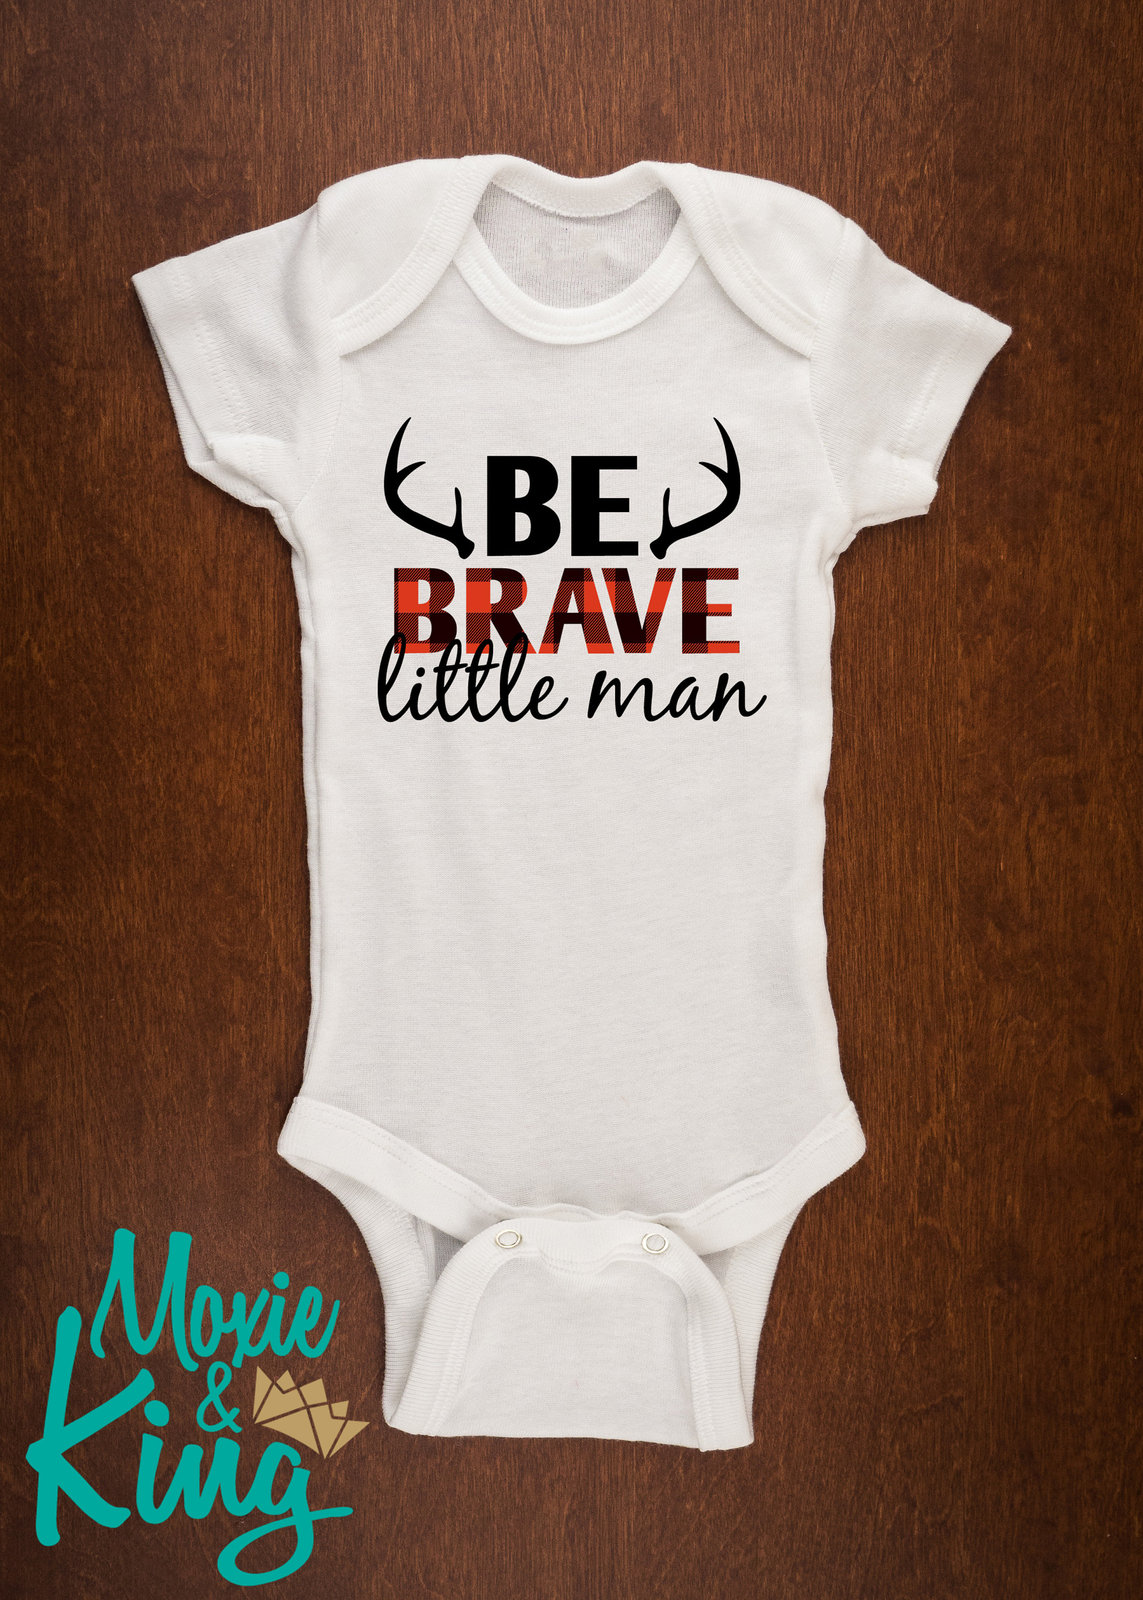 27940a1d0 Lumberjack Baby Be brave little man novelty bodysuit onesie Baby Boy Clothes  rus